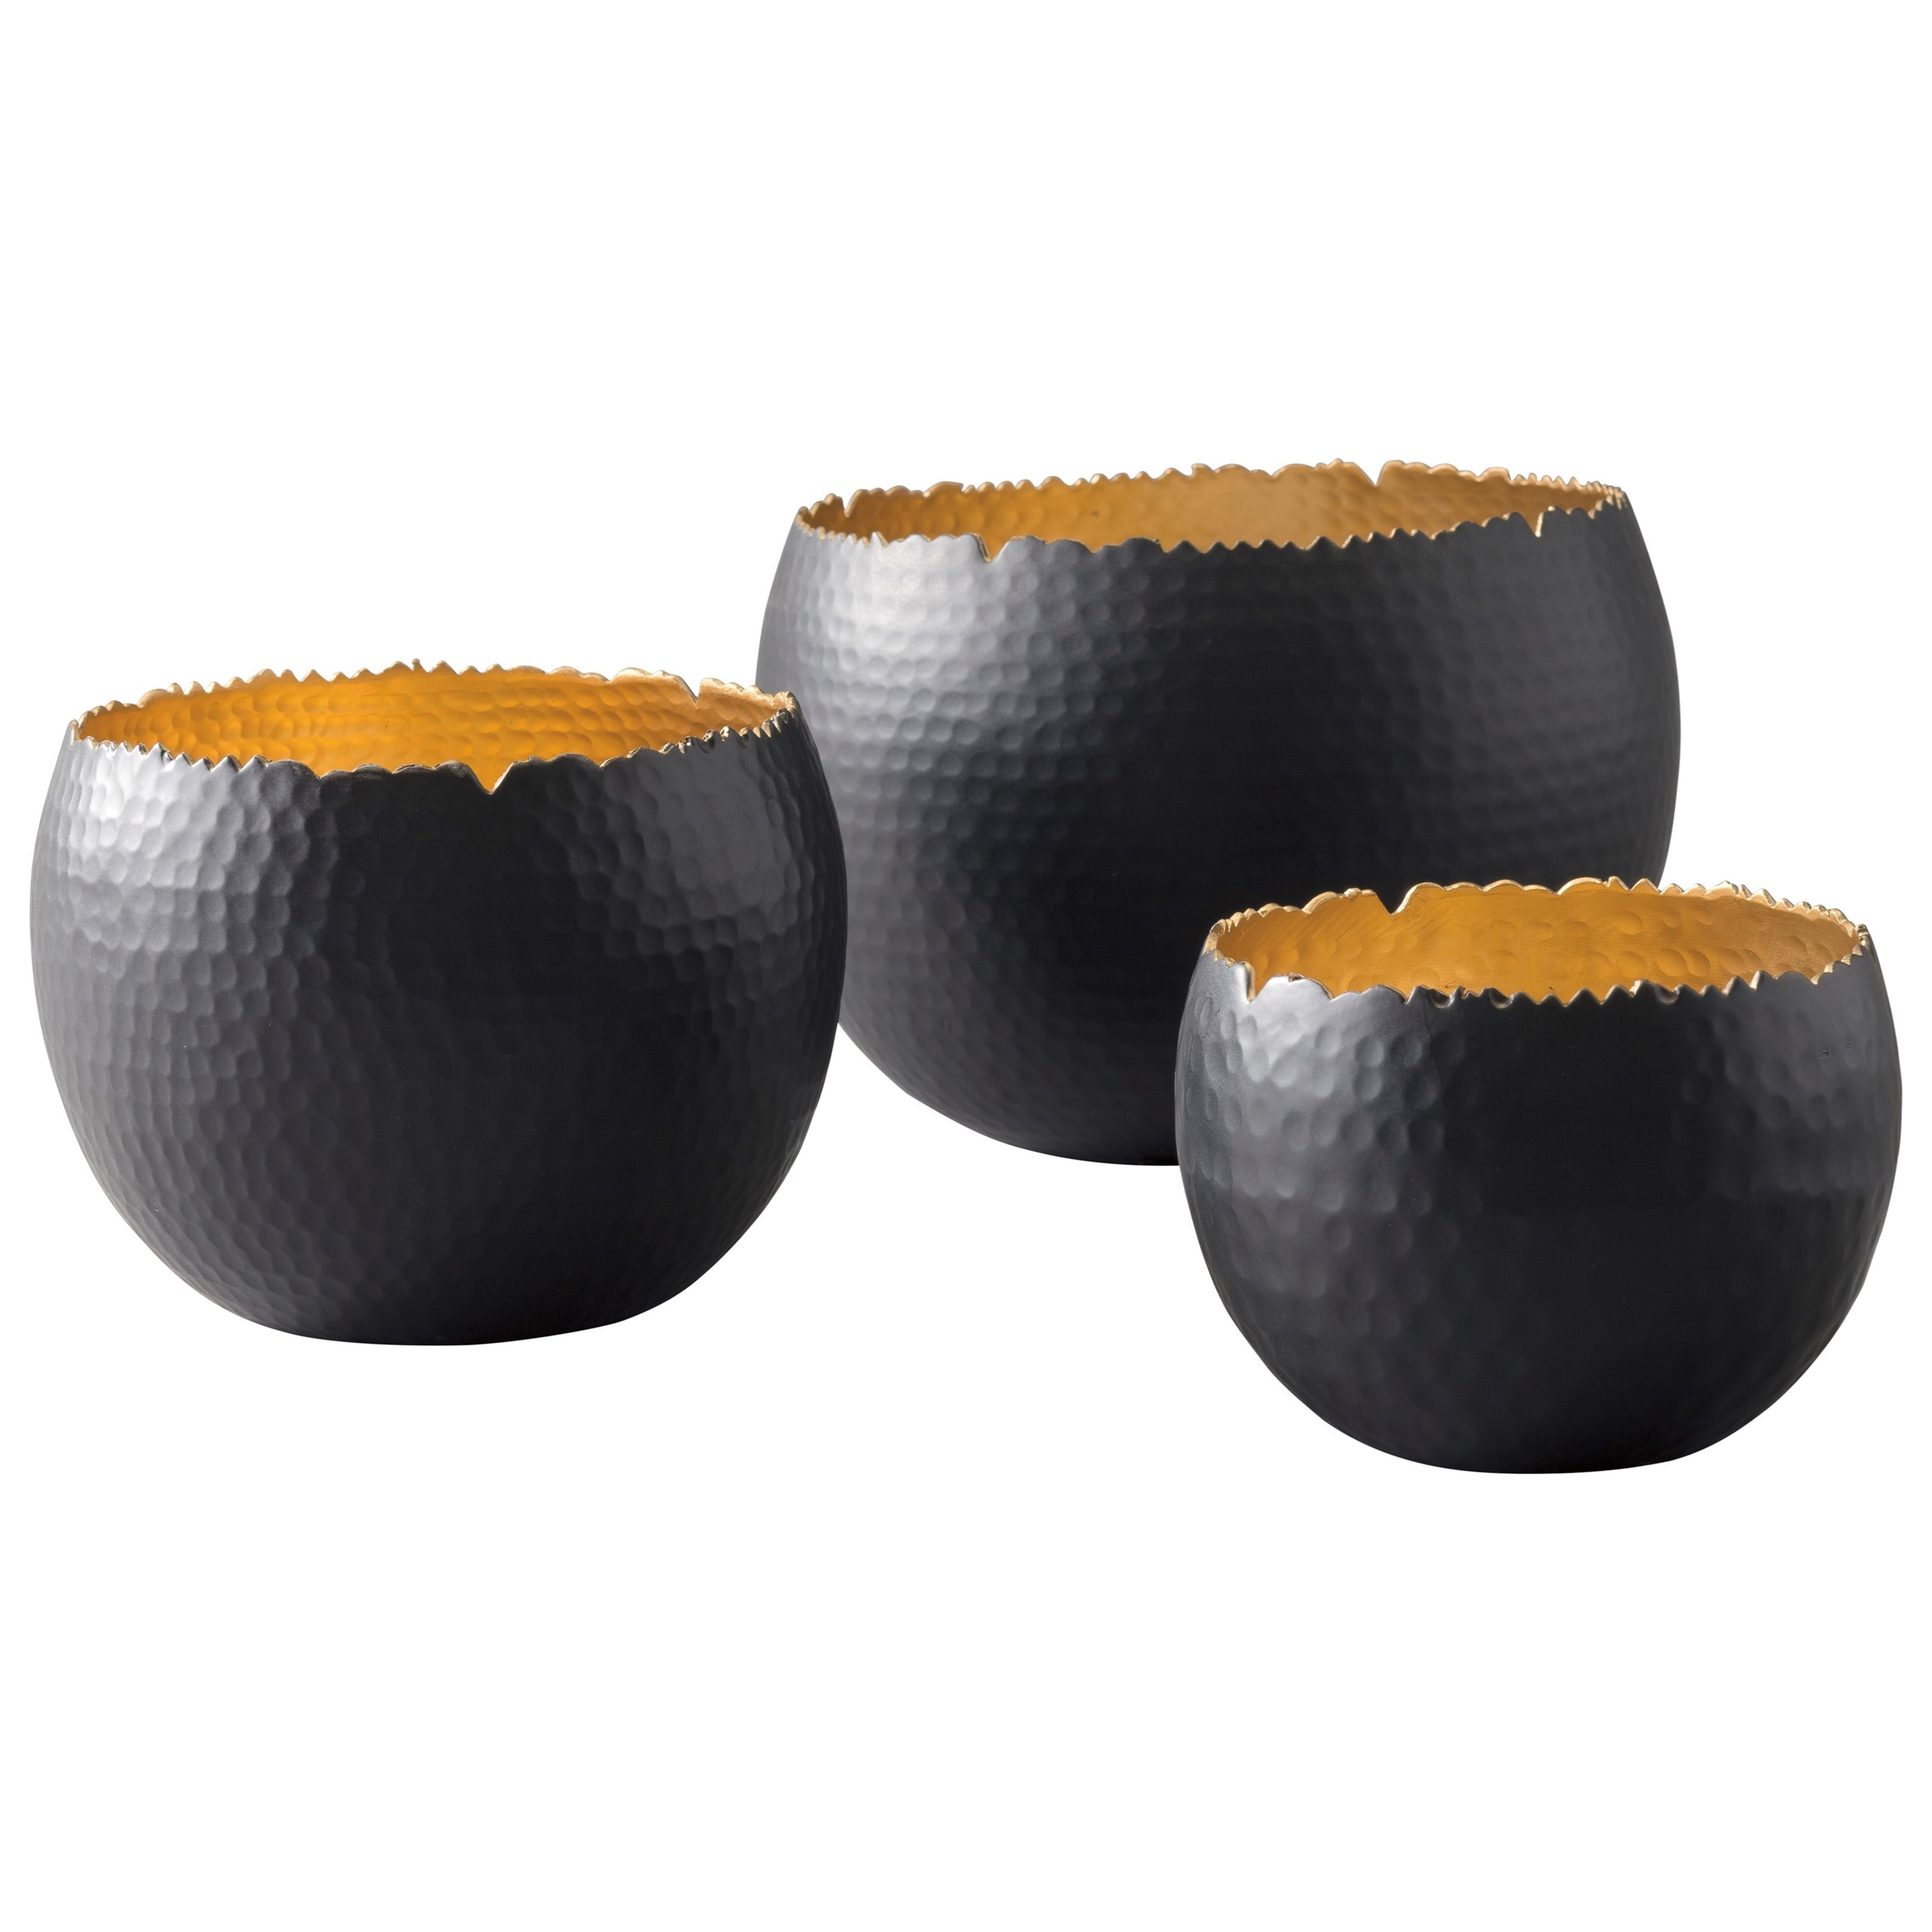 Claudine Black/Gold Finish Bowls, Set of 3